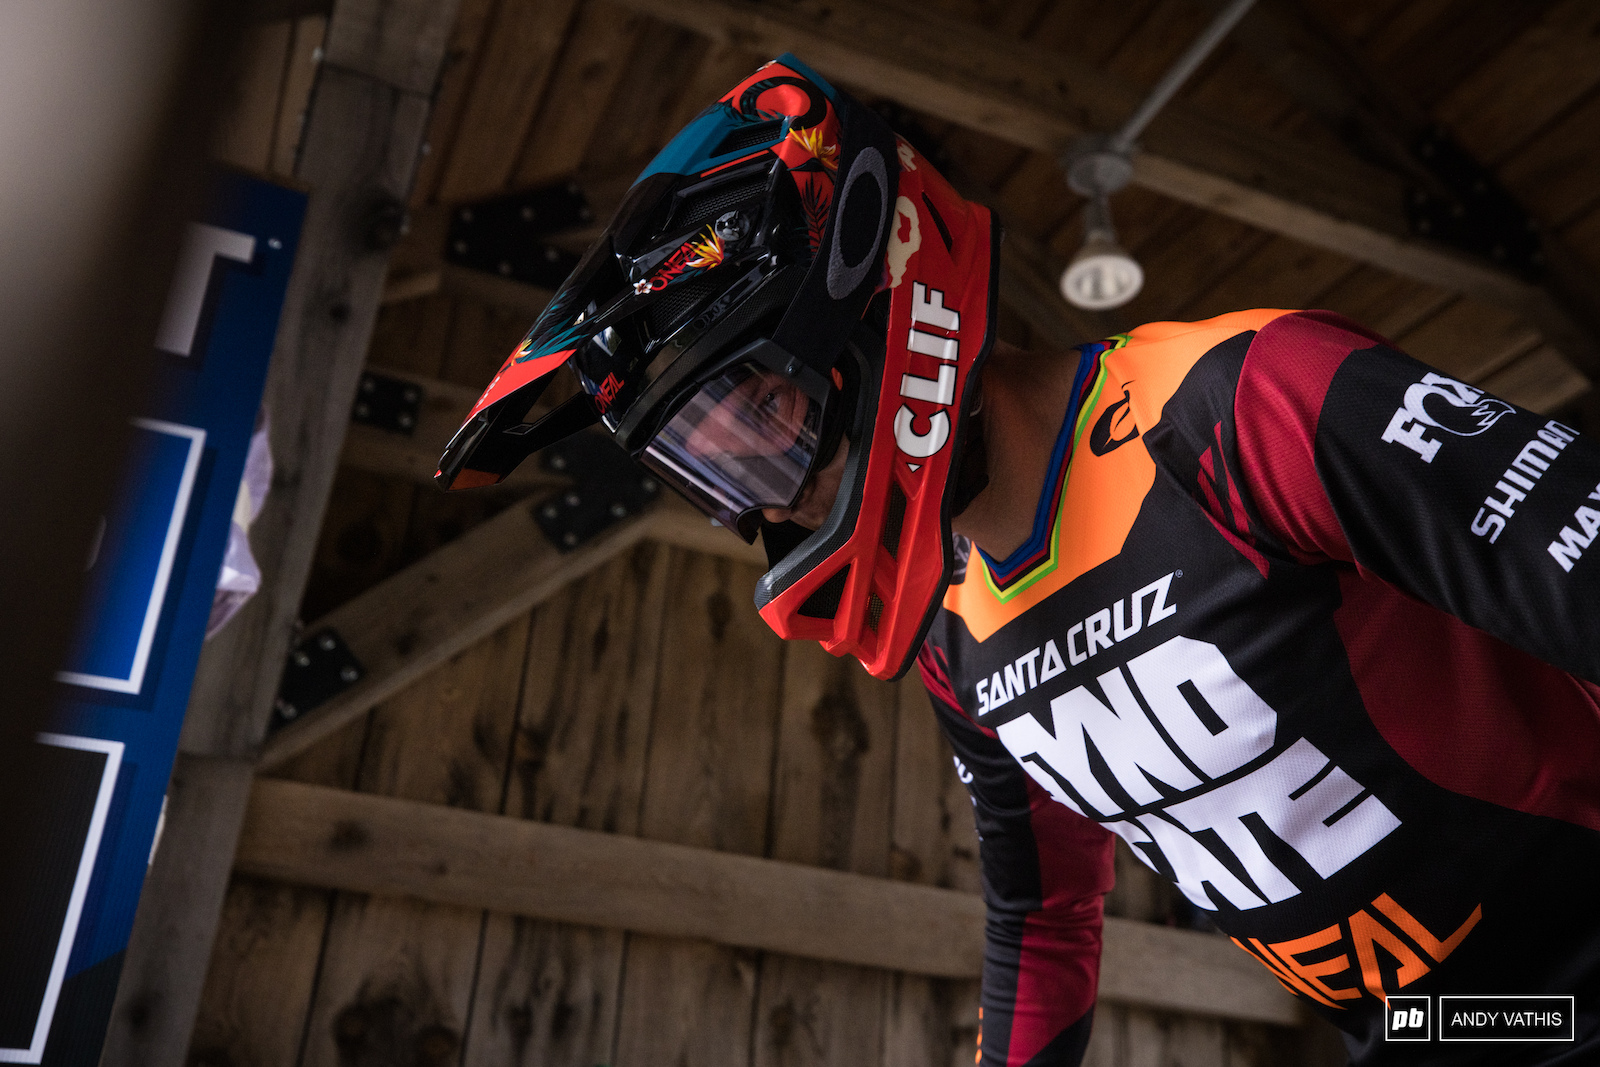 Greg Minnaar decided to try to shut out the pain after taking a nasty spill in yesterday s qualie. Unfortunately he only made it to the first sections of woods before pulling the plug.